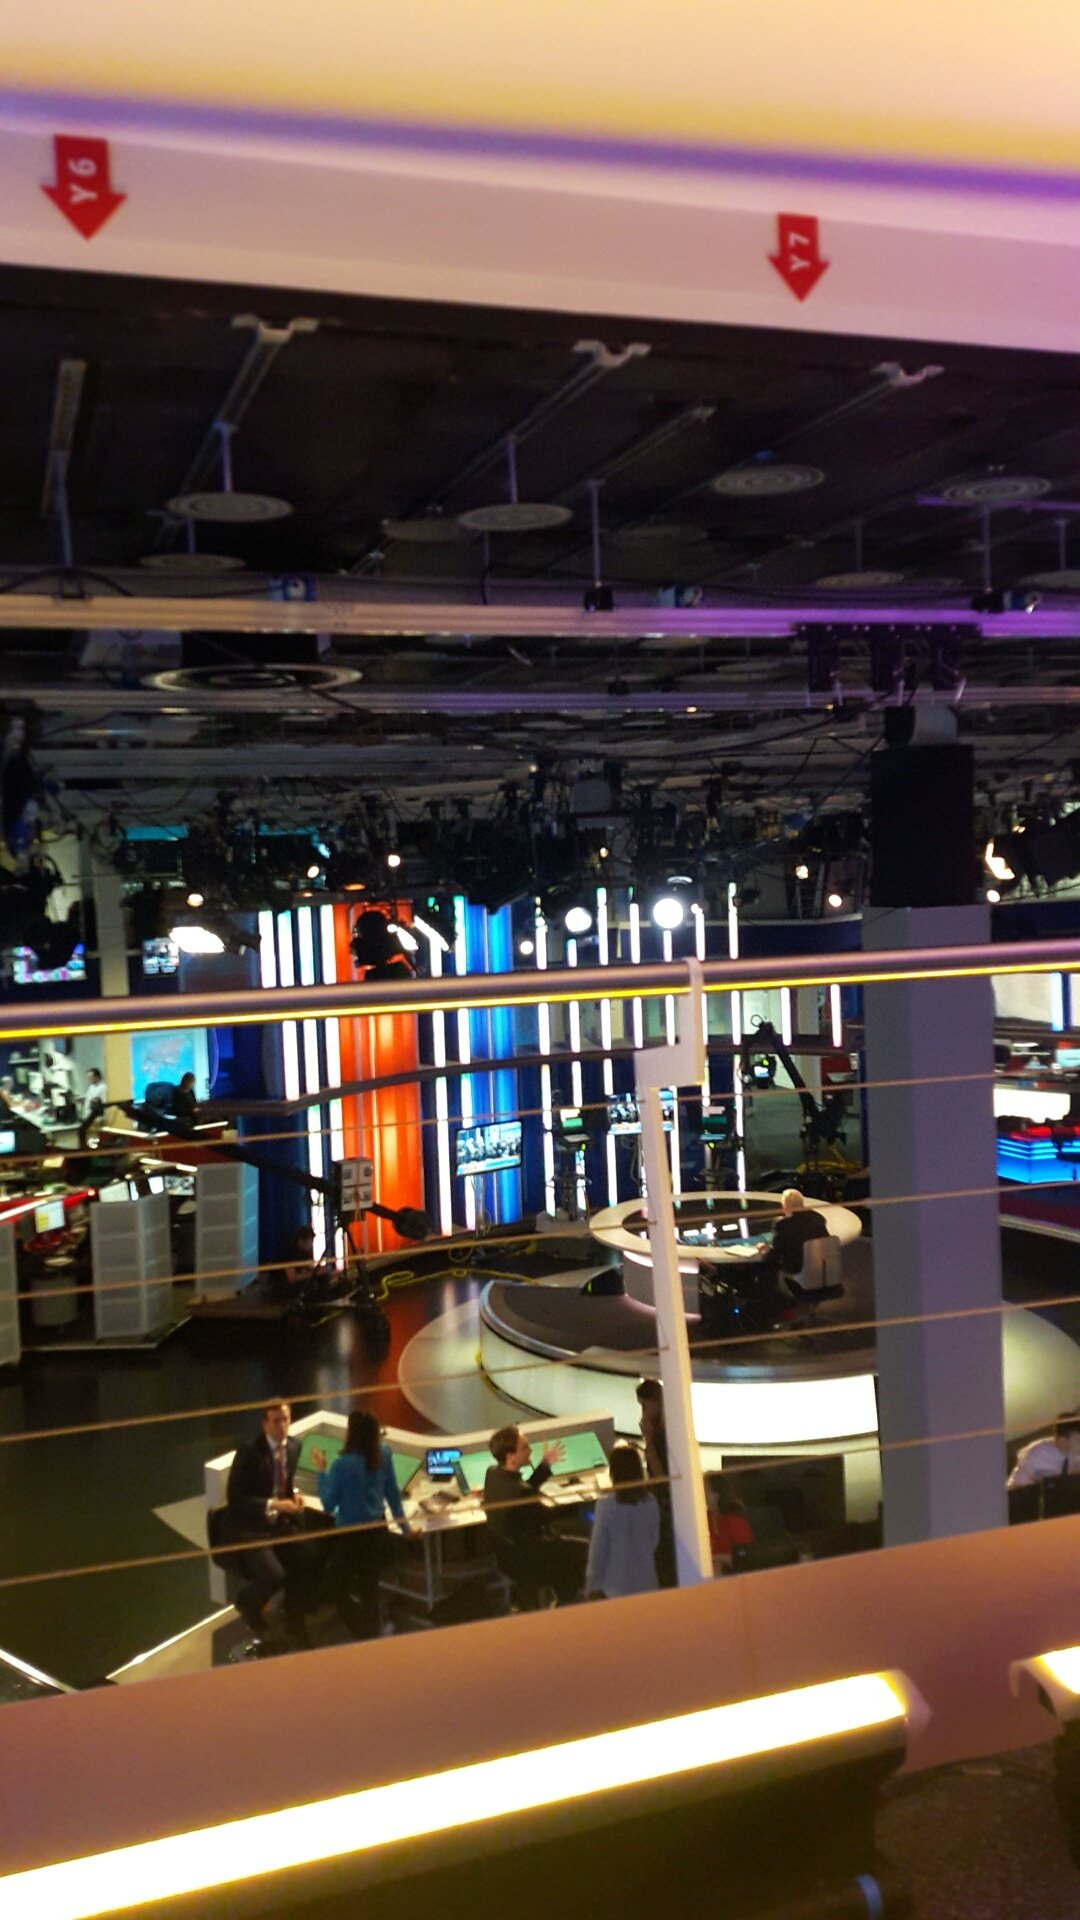 Look out for the @CfJKent team editing away @SkyNews tonight! (We're on the balcony on the top right of the studio) #GE2017 https://t.co/UdQOvyOw56